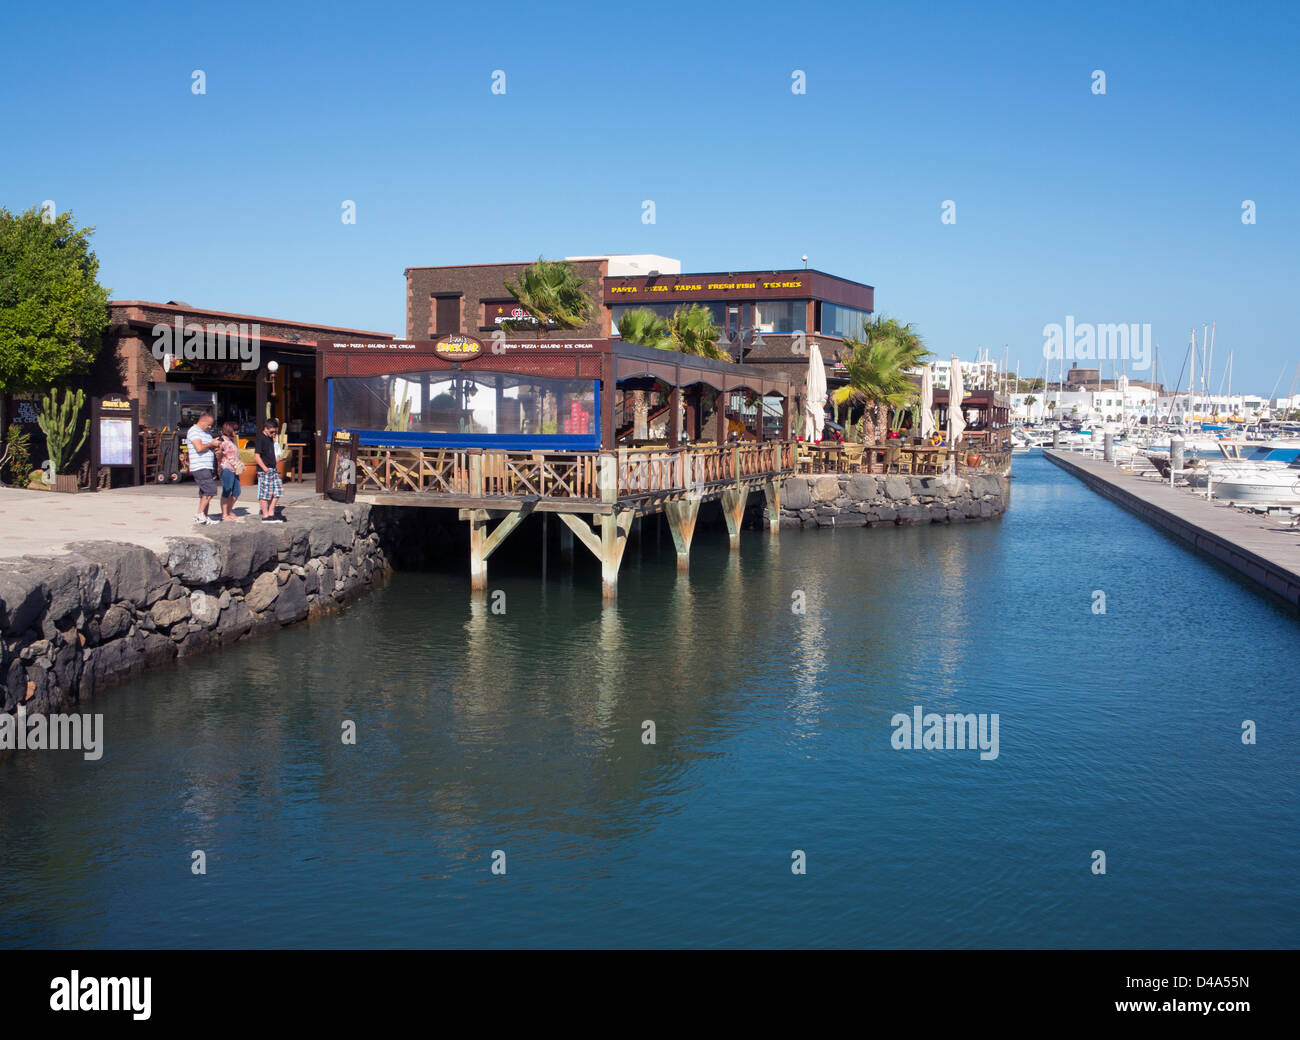 Lanis Snackbar And Restaurant Marina Rubicon, Playa Blanca Stock Photo, ...